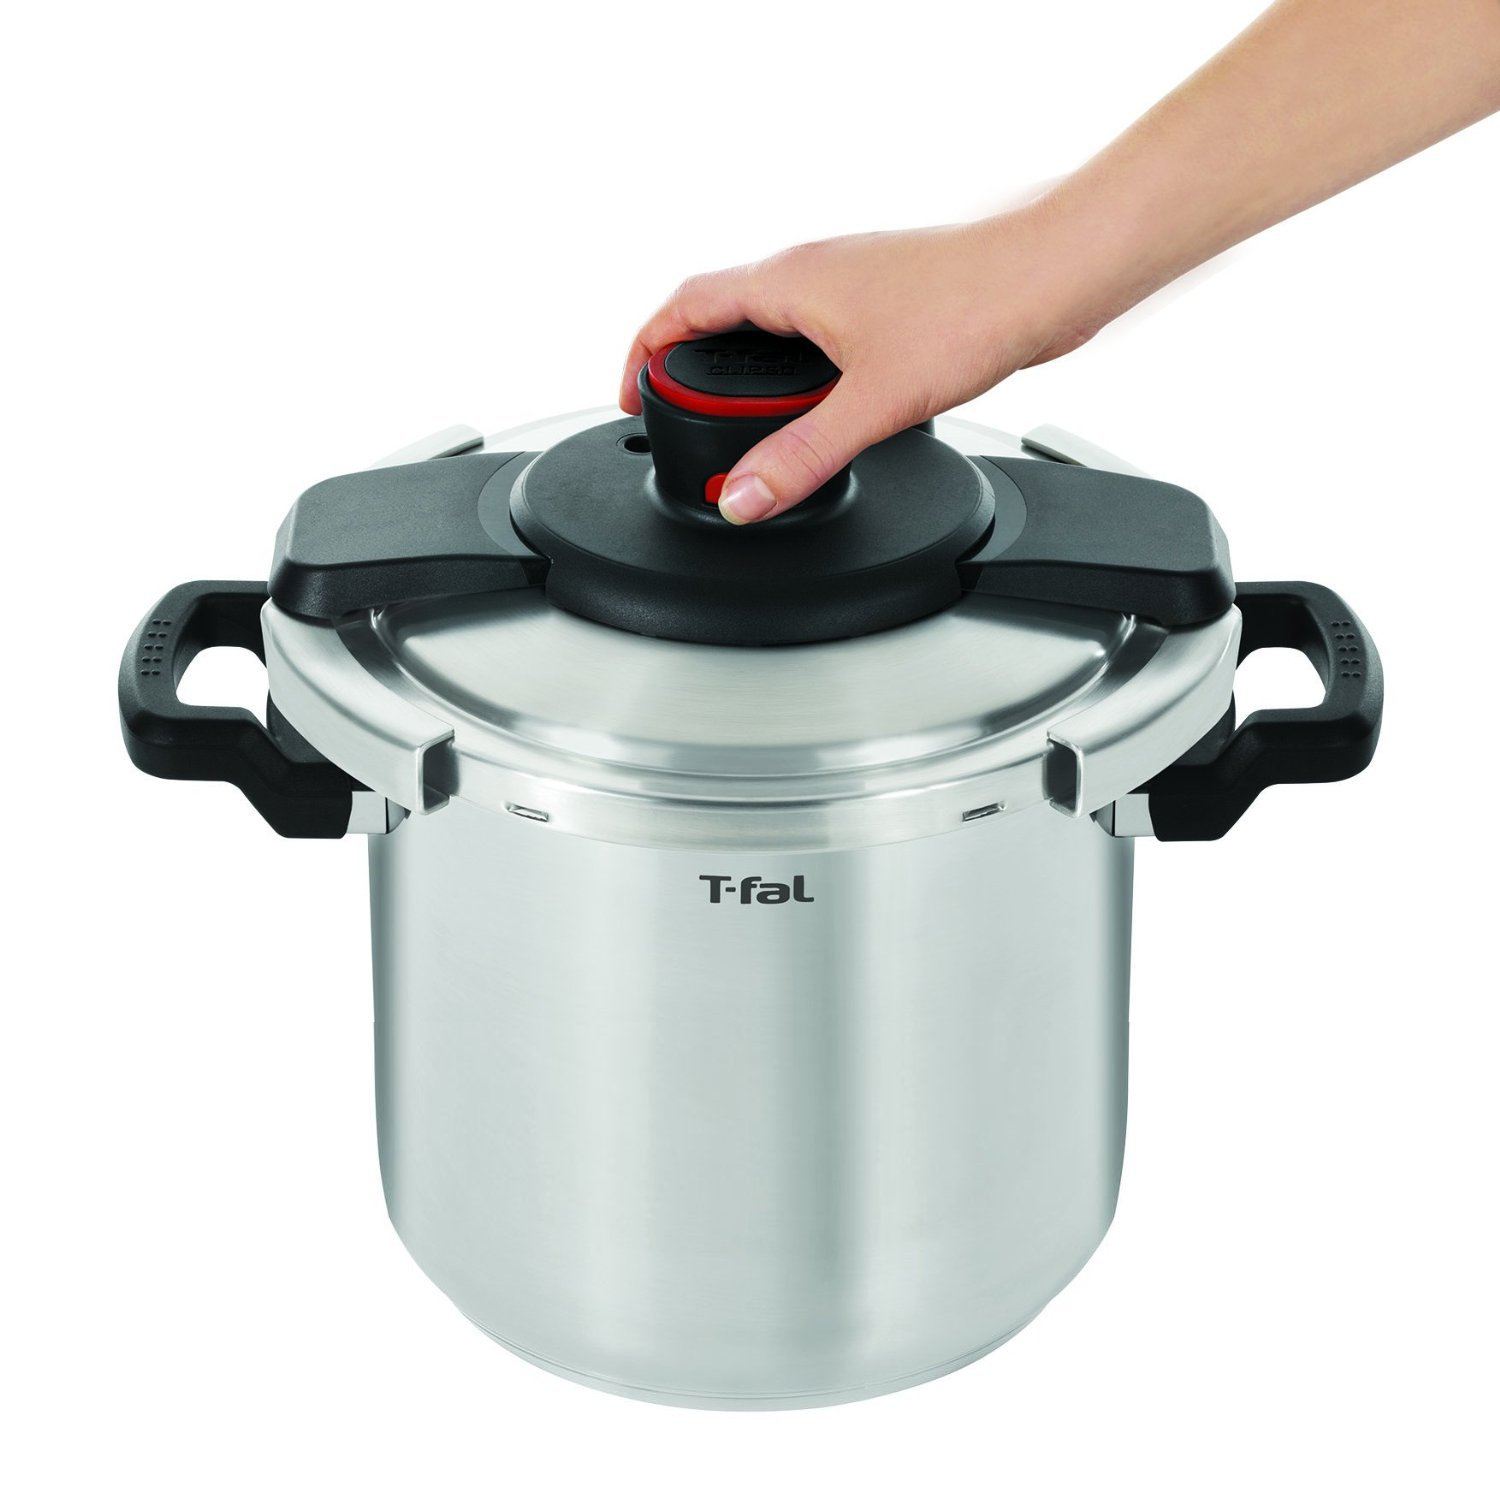 T-fal P45009 Clipso Stainless Steel Dishwasher Safe PTFE PFOA and Cadmium Free 12-PSI Pressure Cooker Cookware, 8-Quart, Silver by T-fal (Image #6)